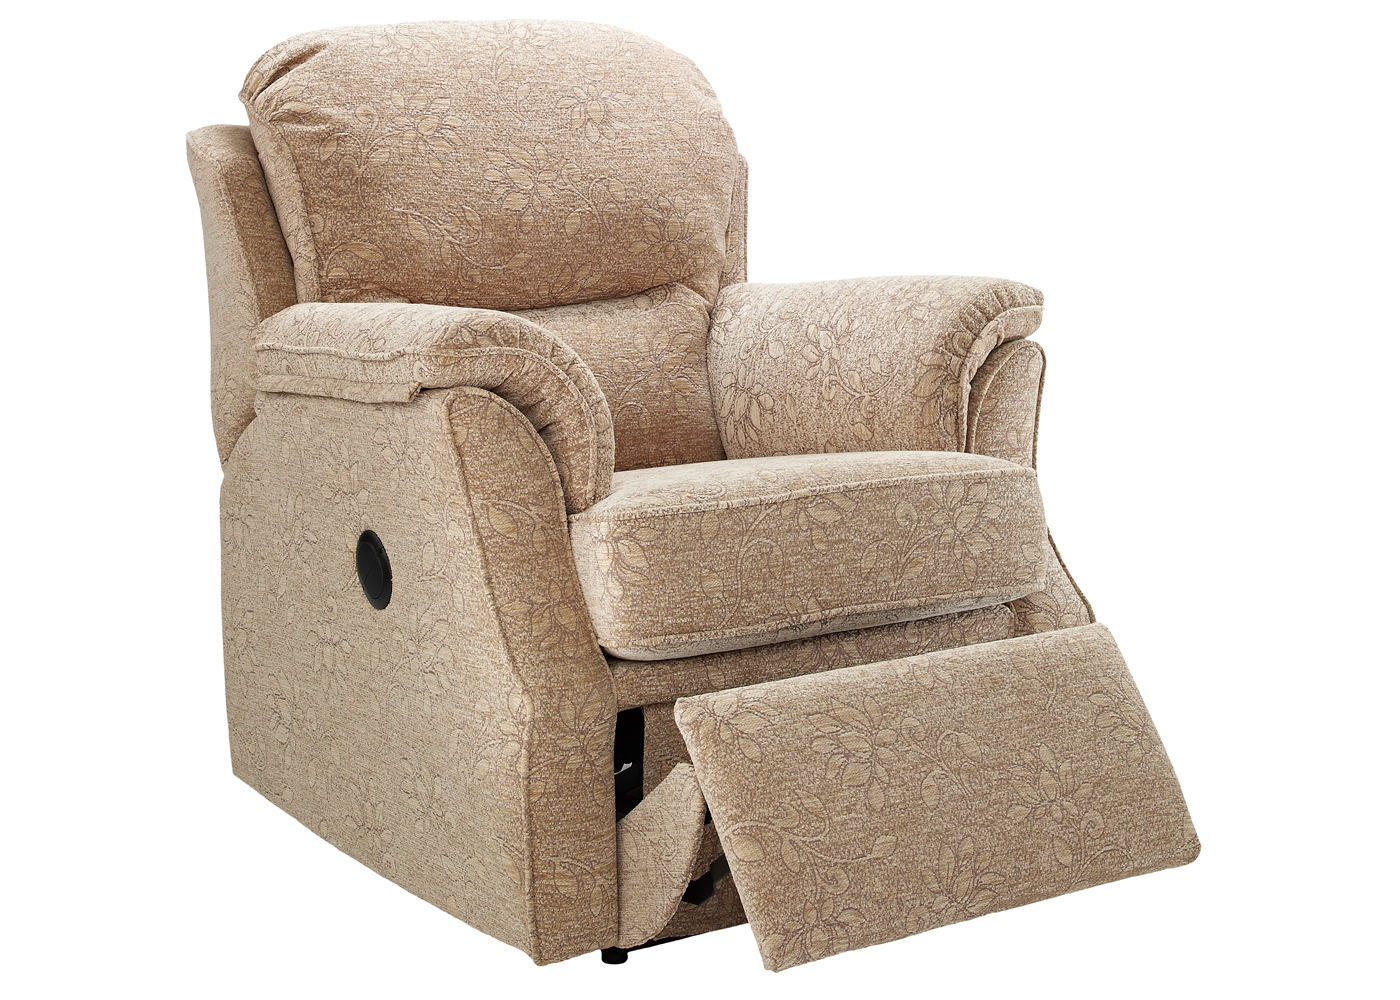 leather wing chair uk mongolian fur cover g plan florence recliner - midfurn furniture superstore